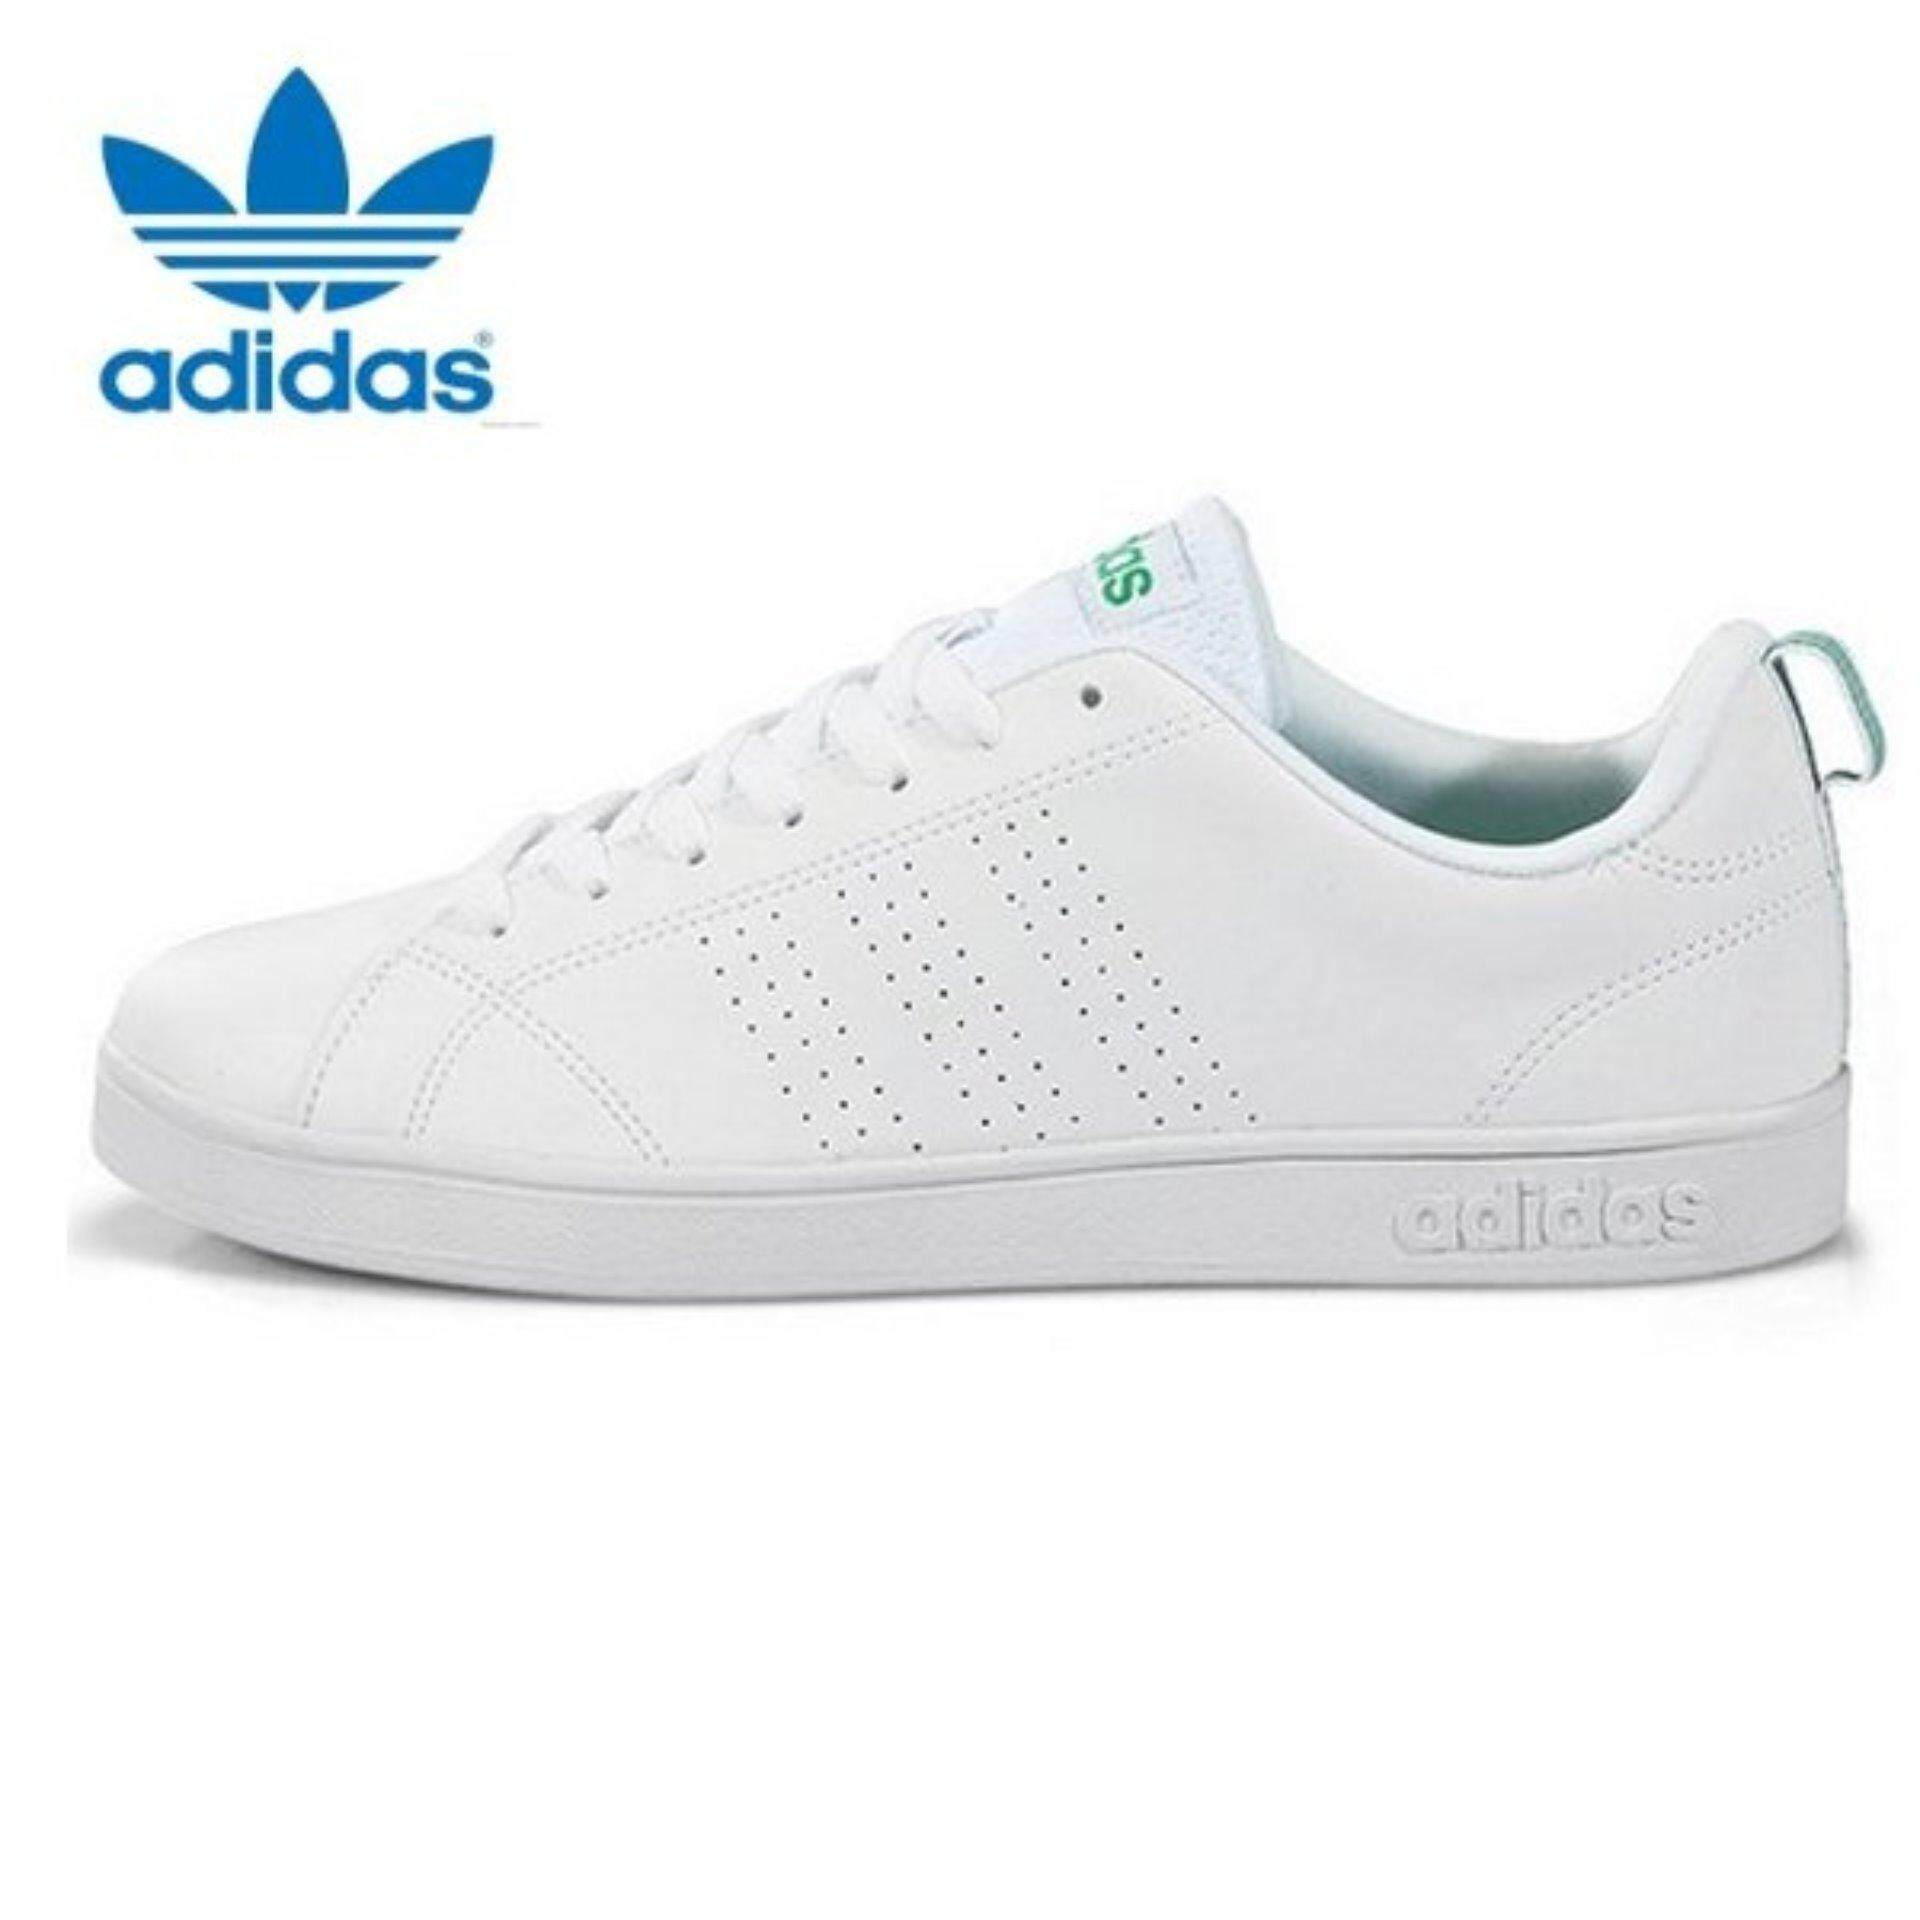 adidas mens shoes. adidas vs advantage f99251 neo casual white/white/green mens shoes | lazada malaysia ,